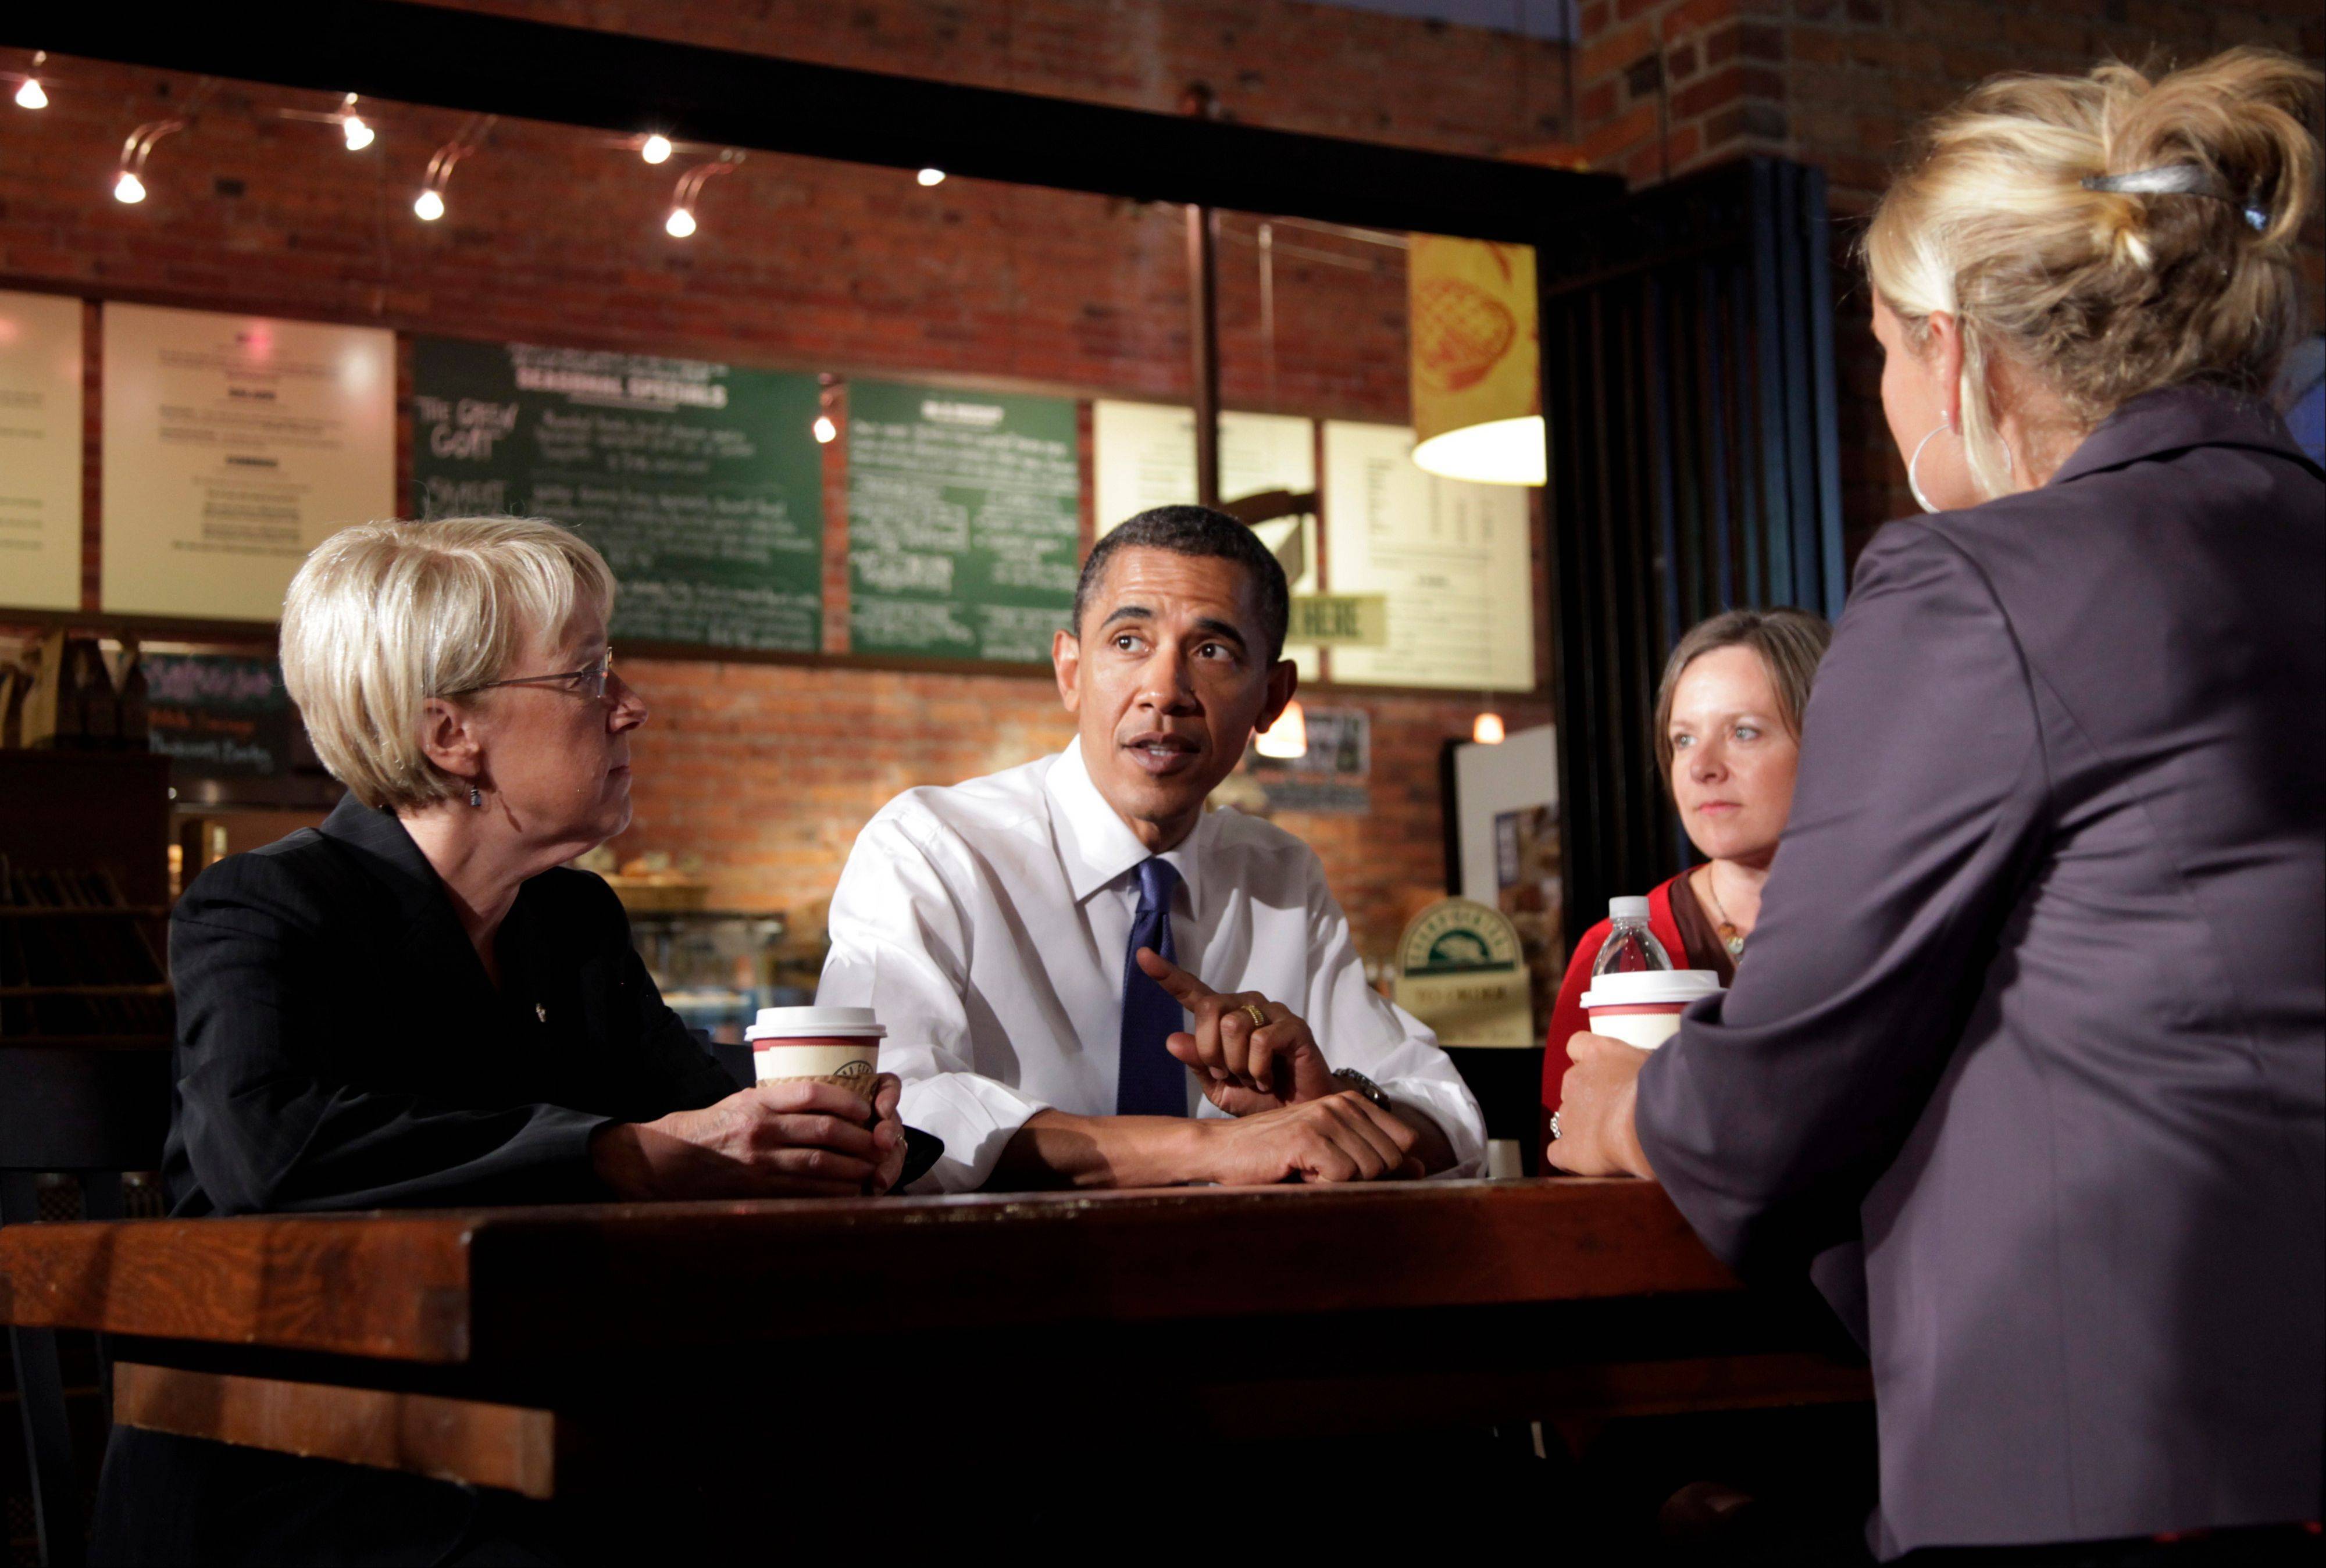 President Barack Obama speaks during a round-table discussion with small business owners at Grand Central Bakery in Seattle. In an election year when the economy and small business have combined to form a huge campaign issue, advocacy groups like the Small Business & Entrepreneurship Council step up their own campaigns on behalf of the company owners they represent.